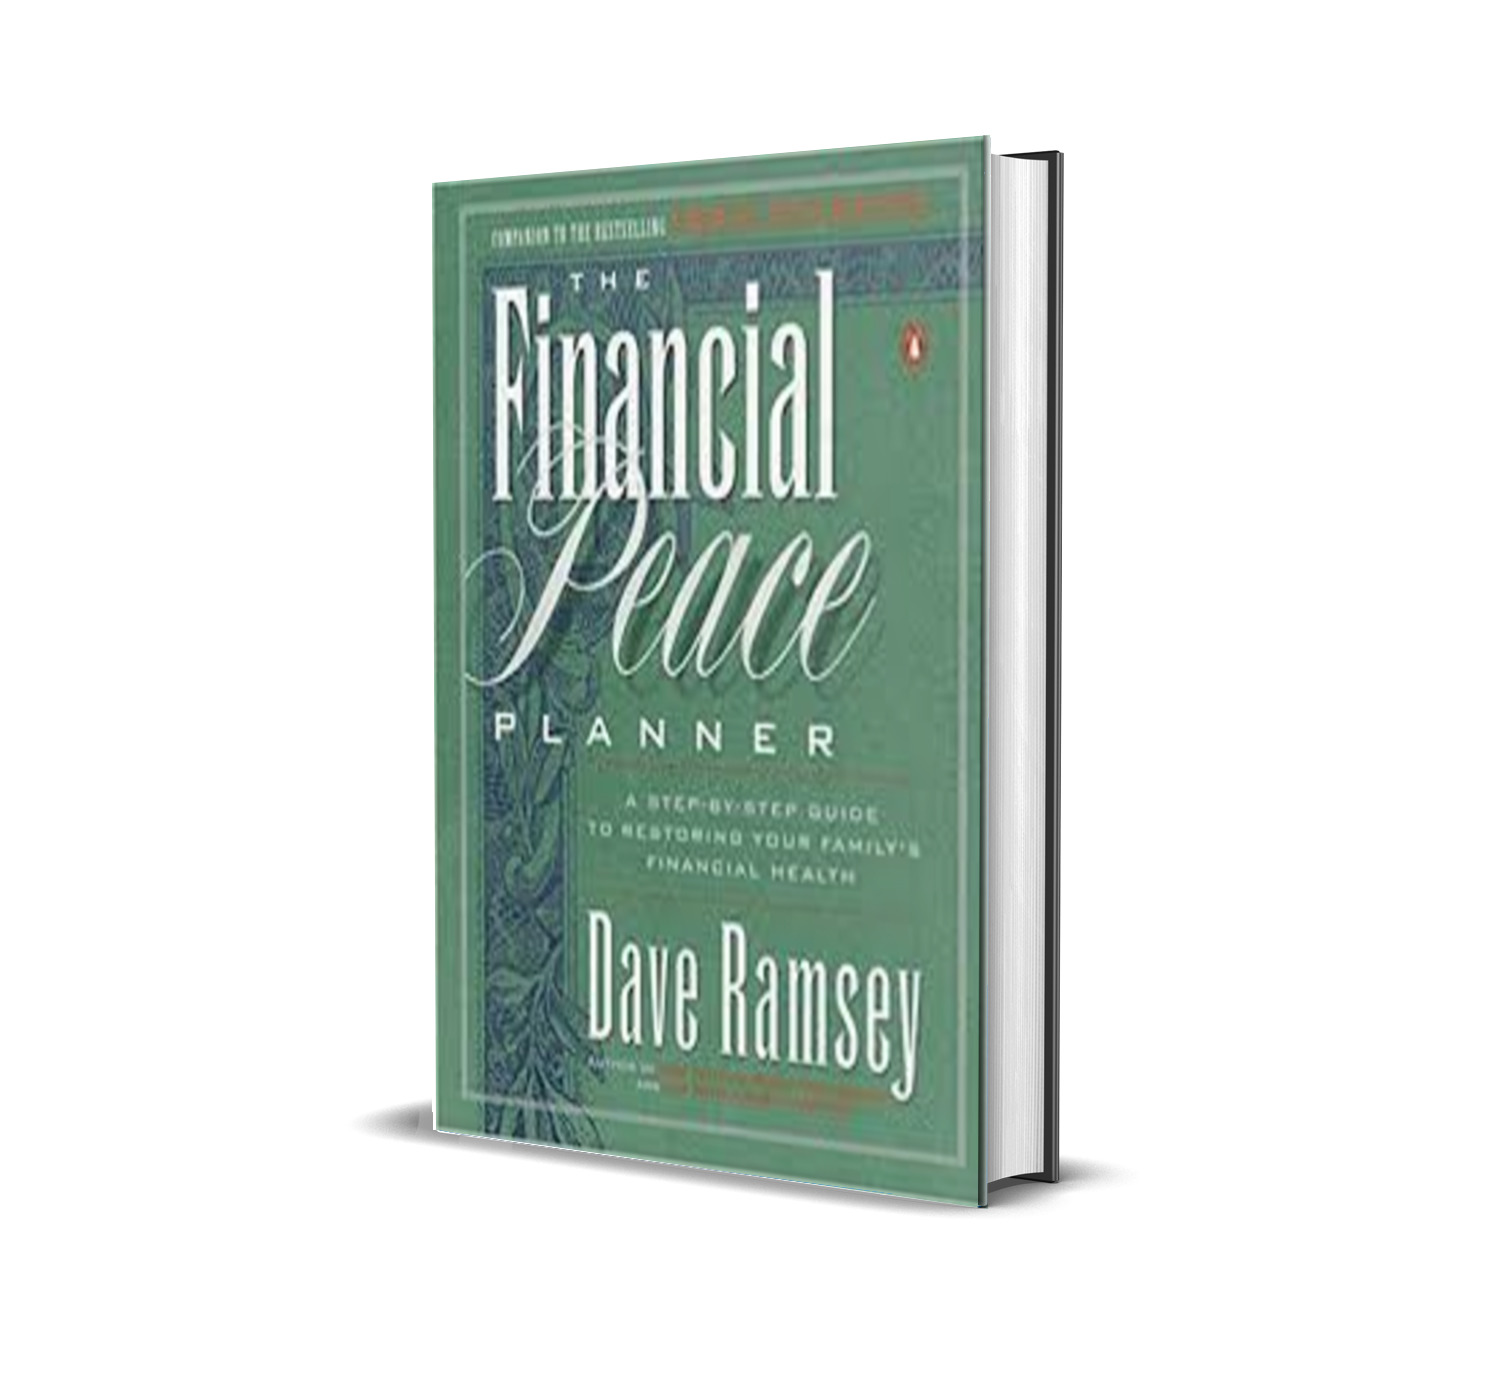 THE FINANCIAL PEACE PLANNER - DAVE RAMSEY